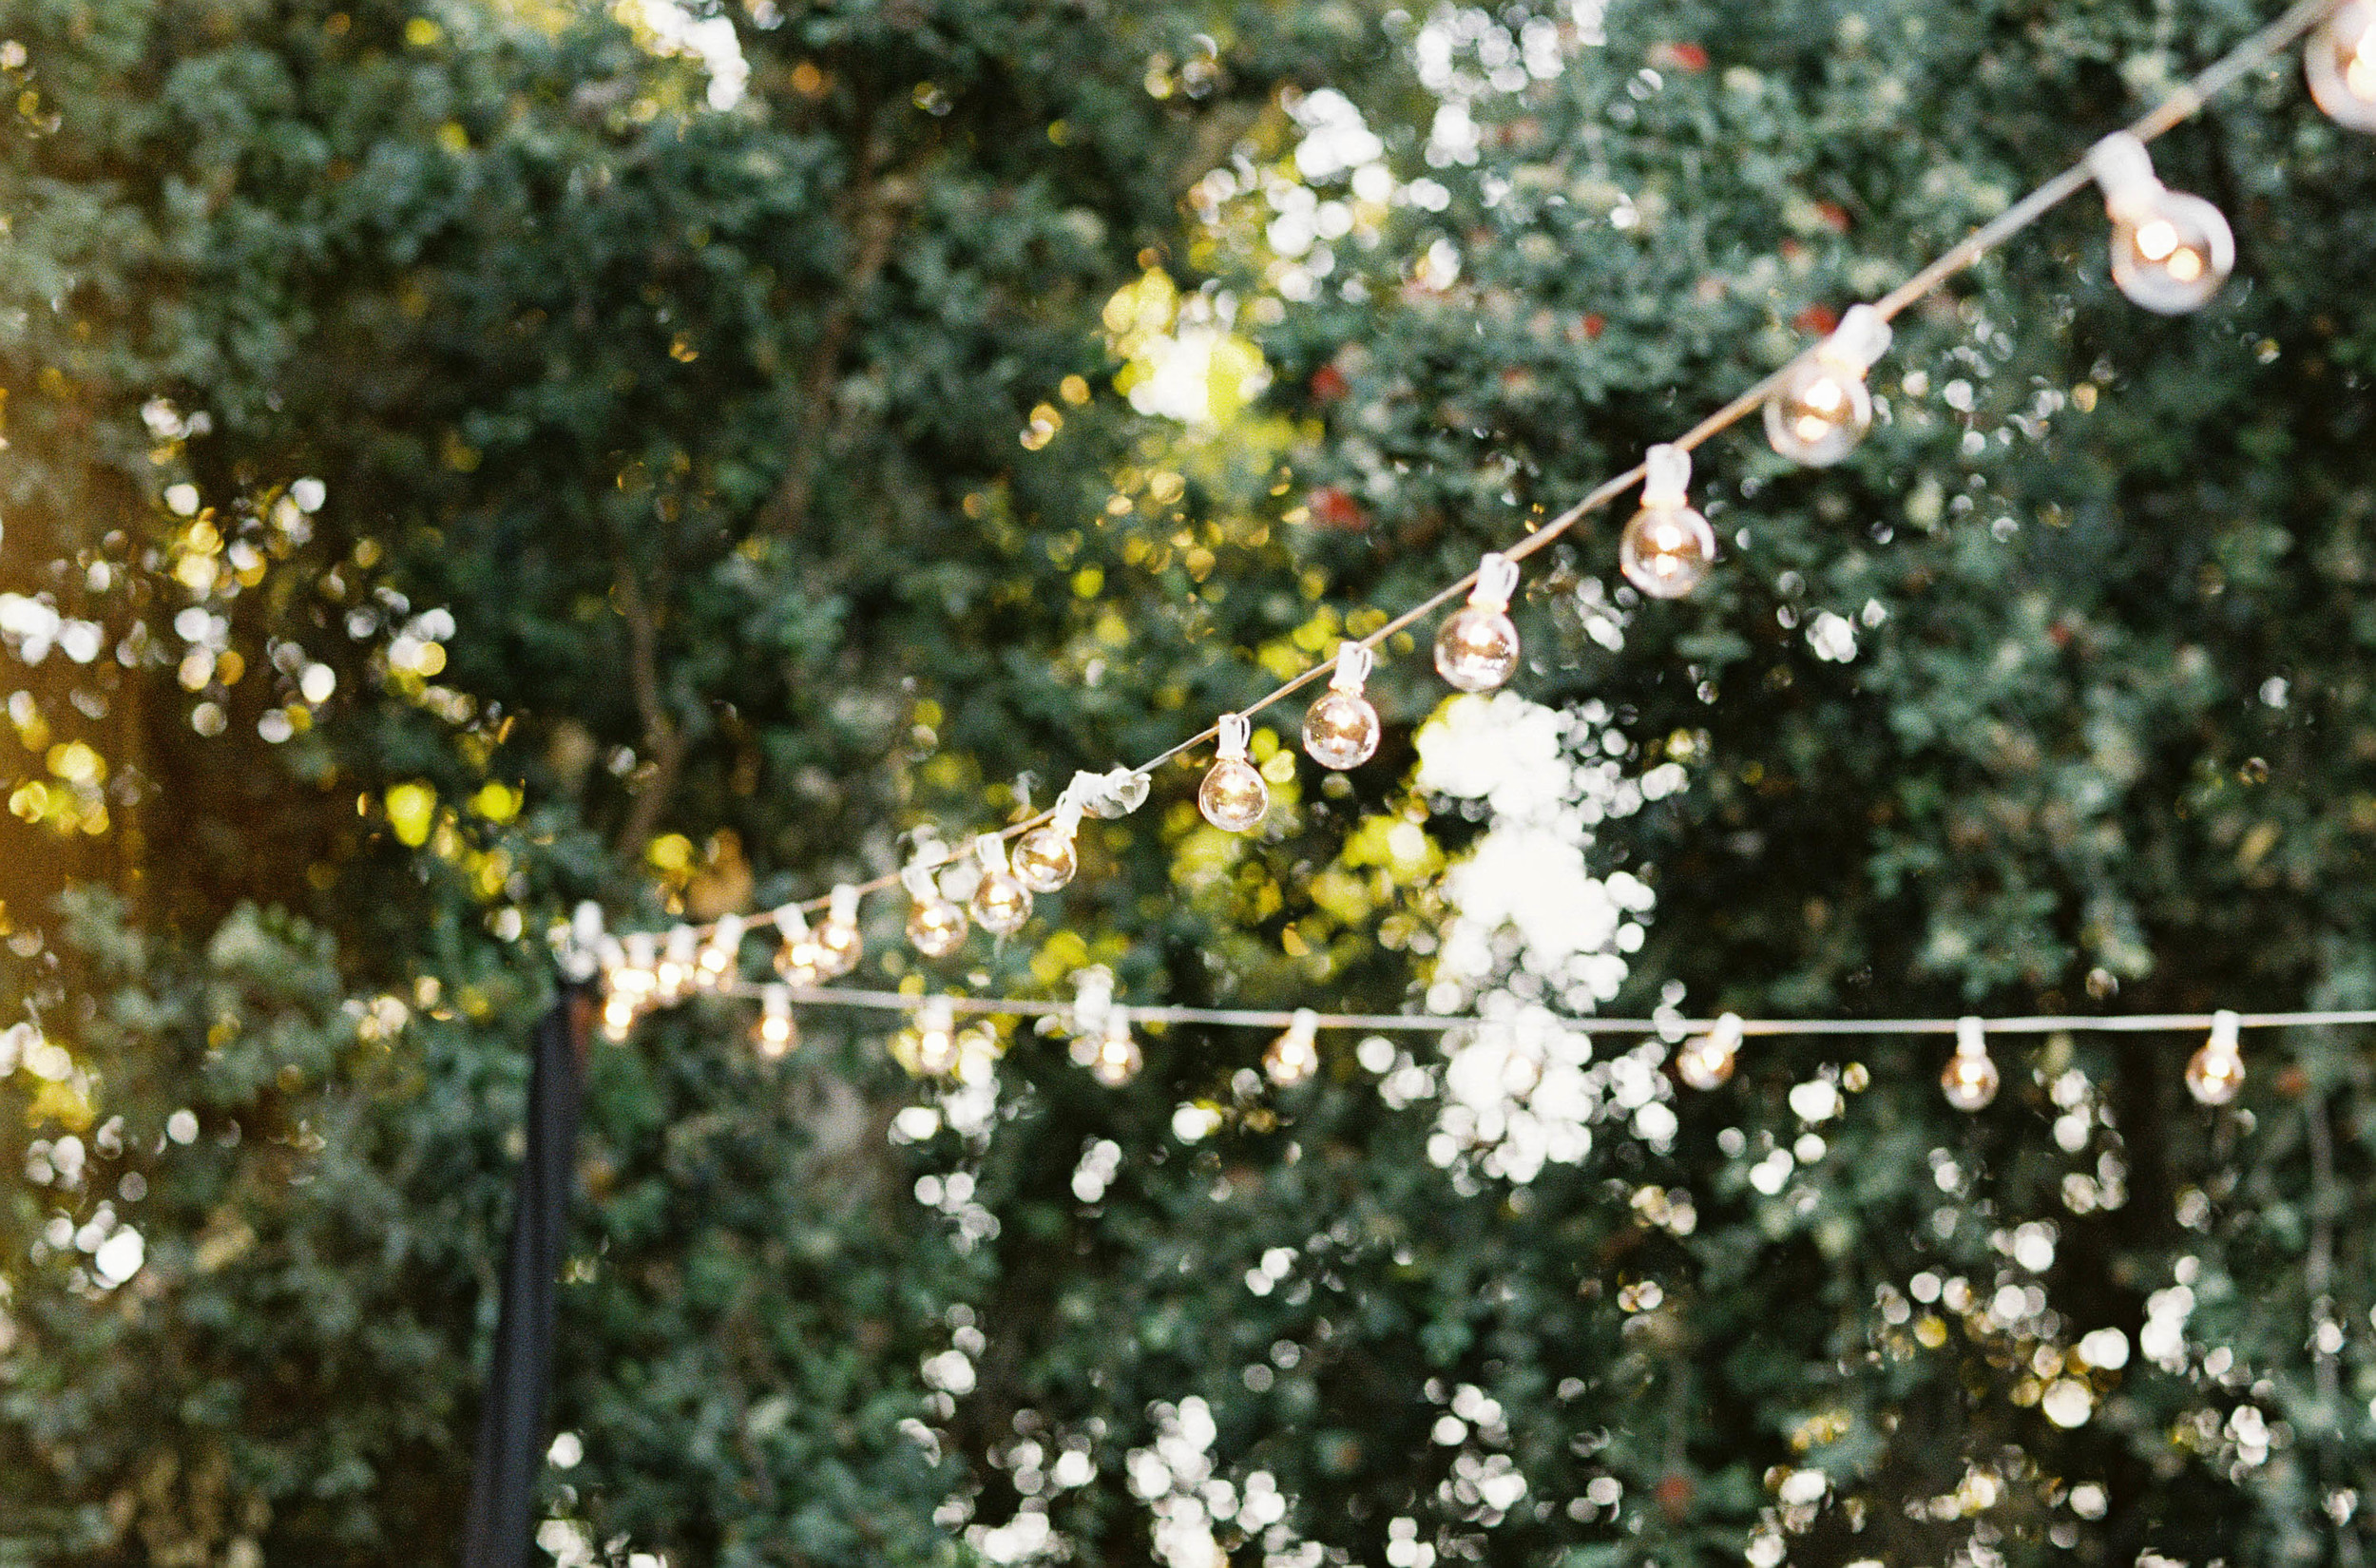 Meghan Mehan Photography - Fine Art Film Photography - California | San Francisco | Napa | Sonoma | Carmel | Big Sur | Santa Barbara | Nashville 030.jpg